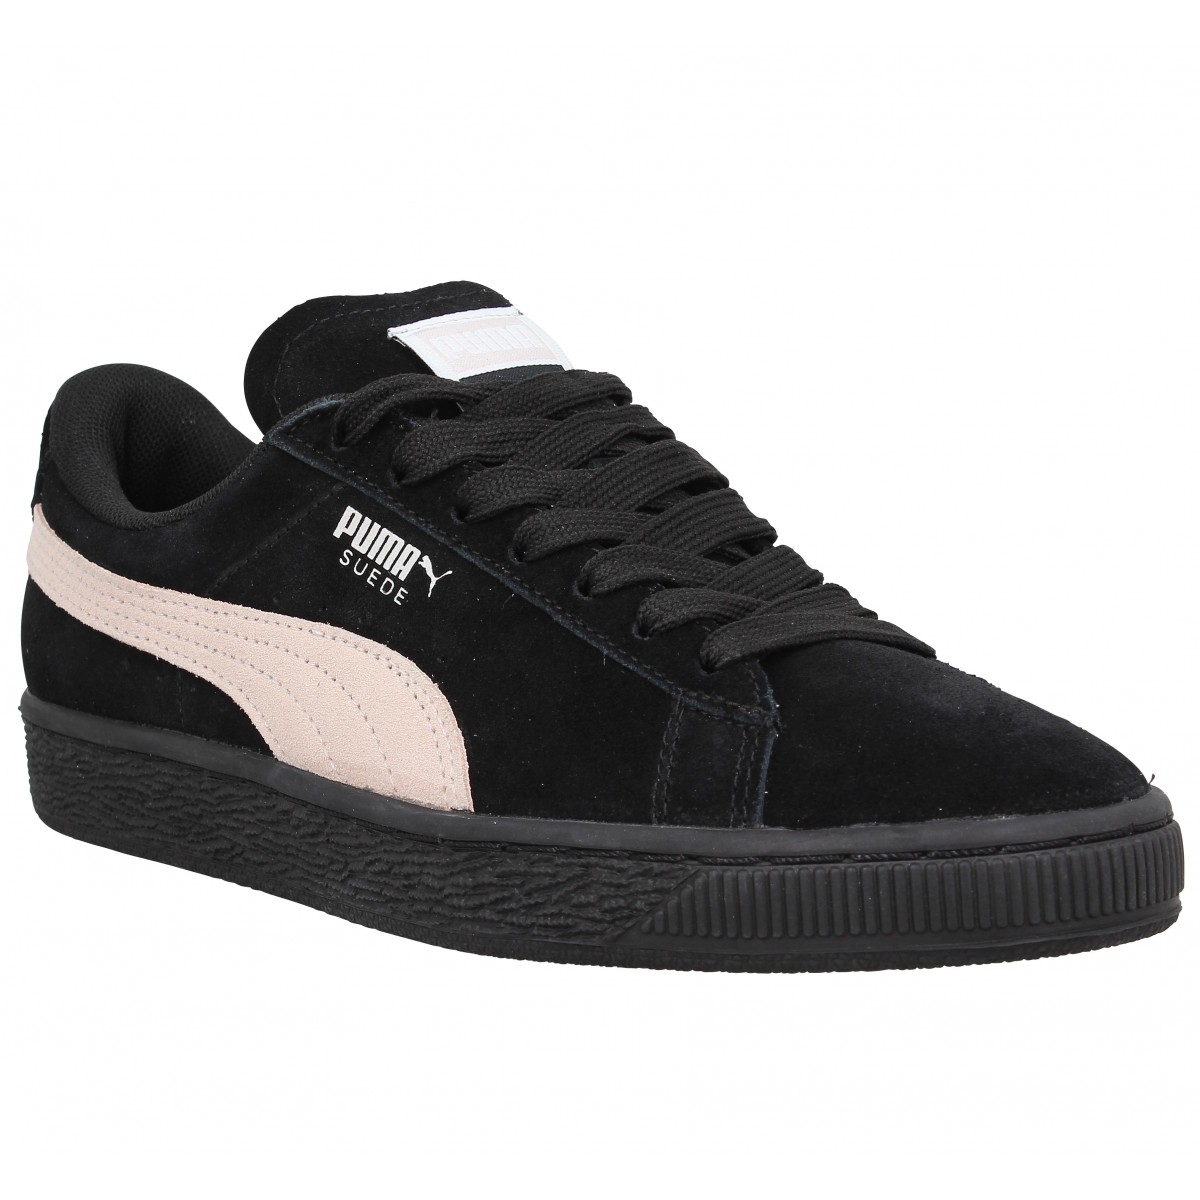 Baskets PUMA Suede Classic velours Femme Black Pearl